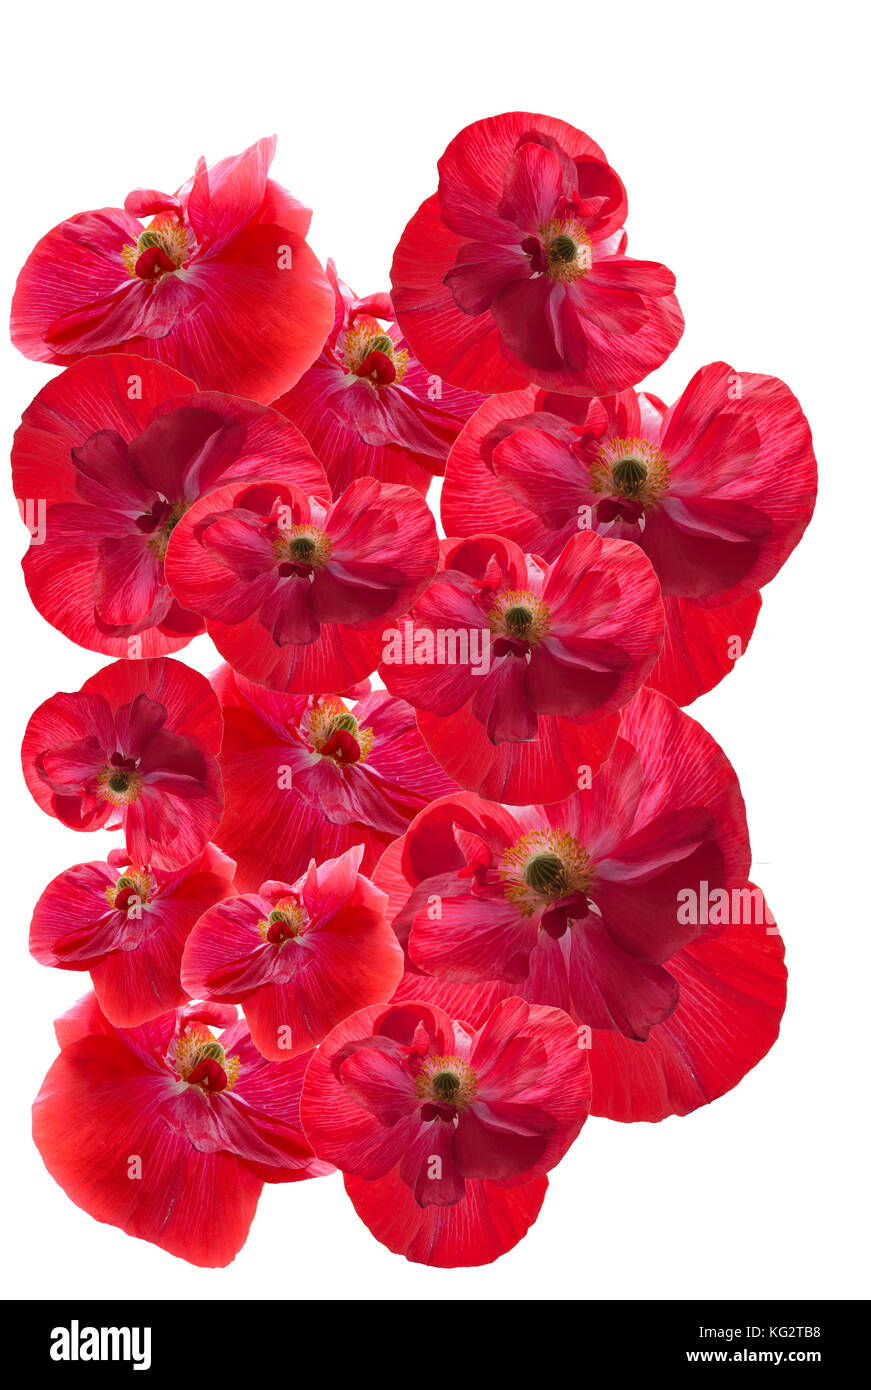 Beautiful memorial Poppies on a white background grouped together. - Stock Image